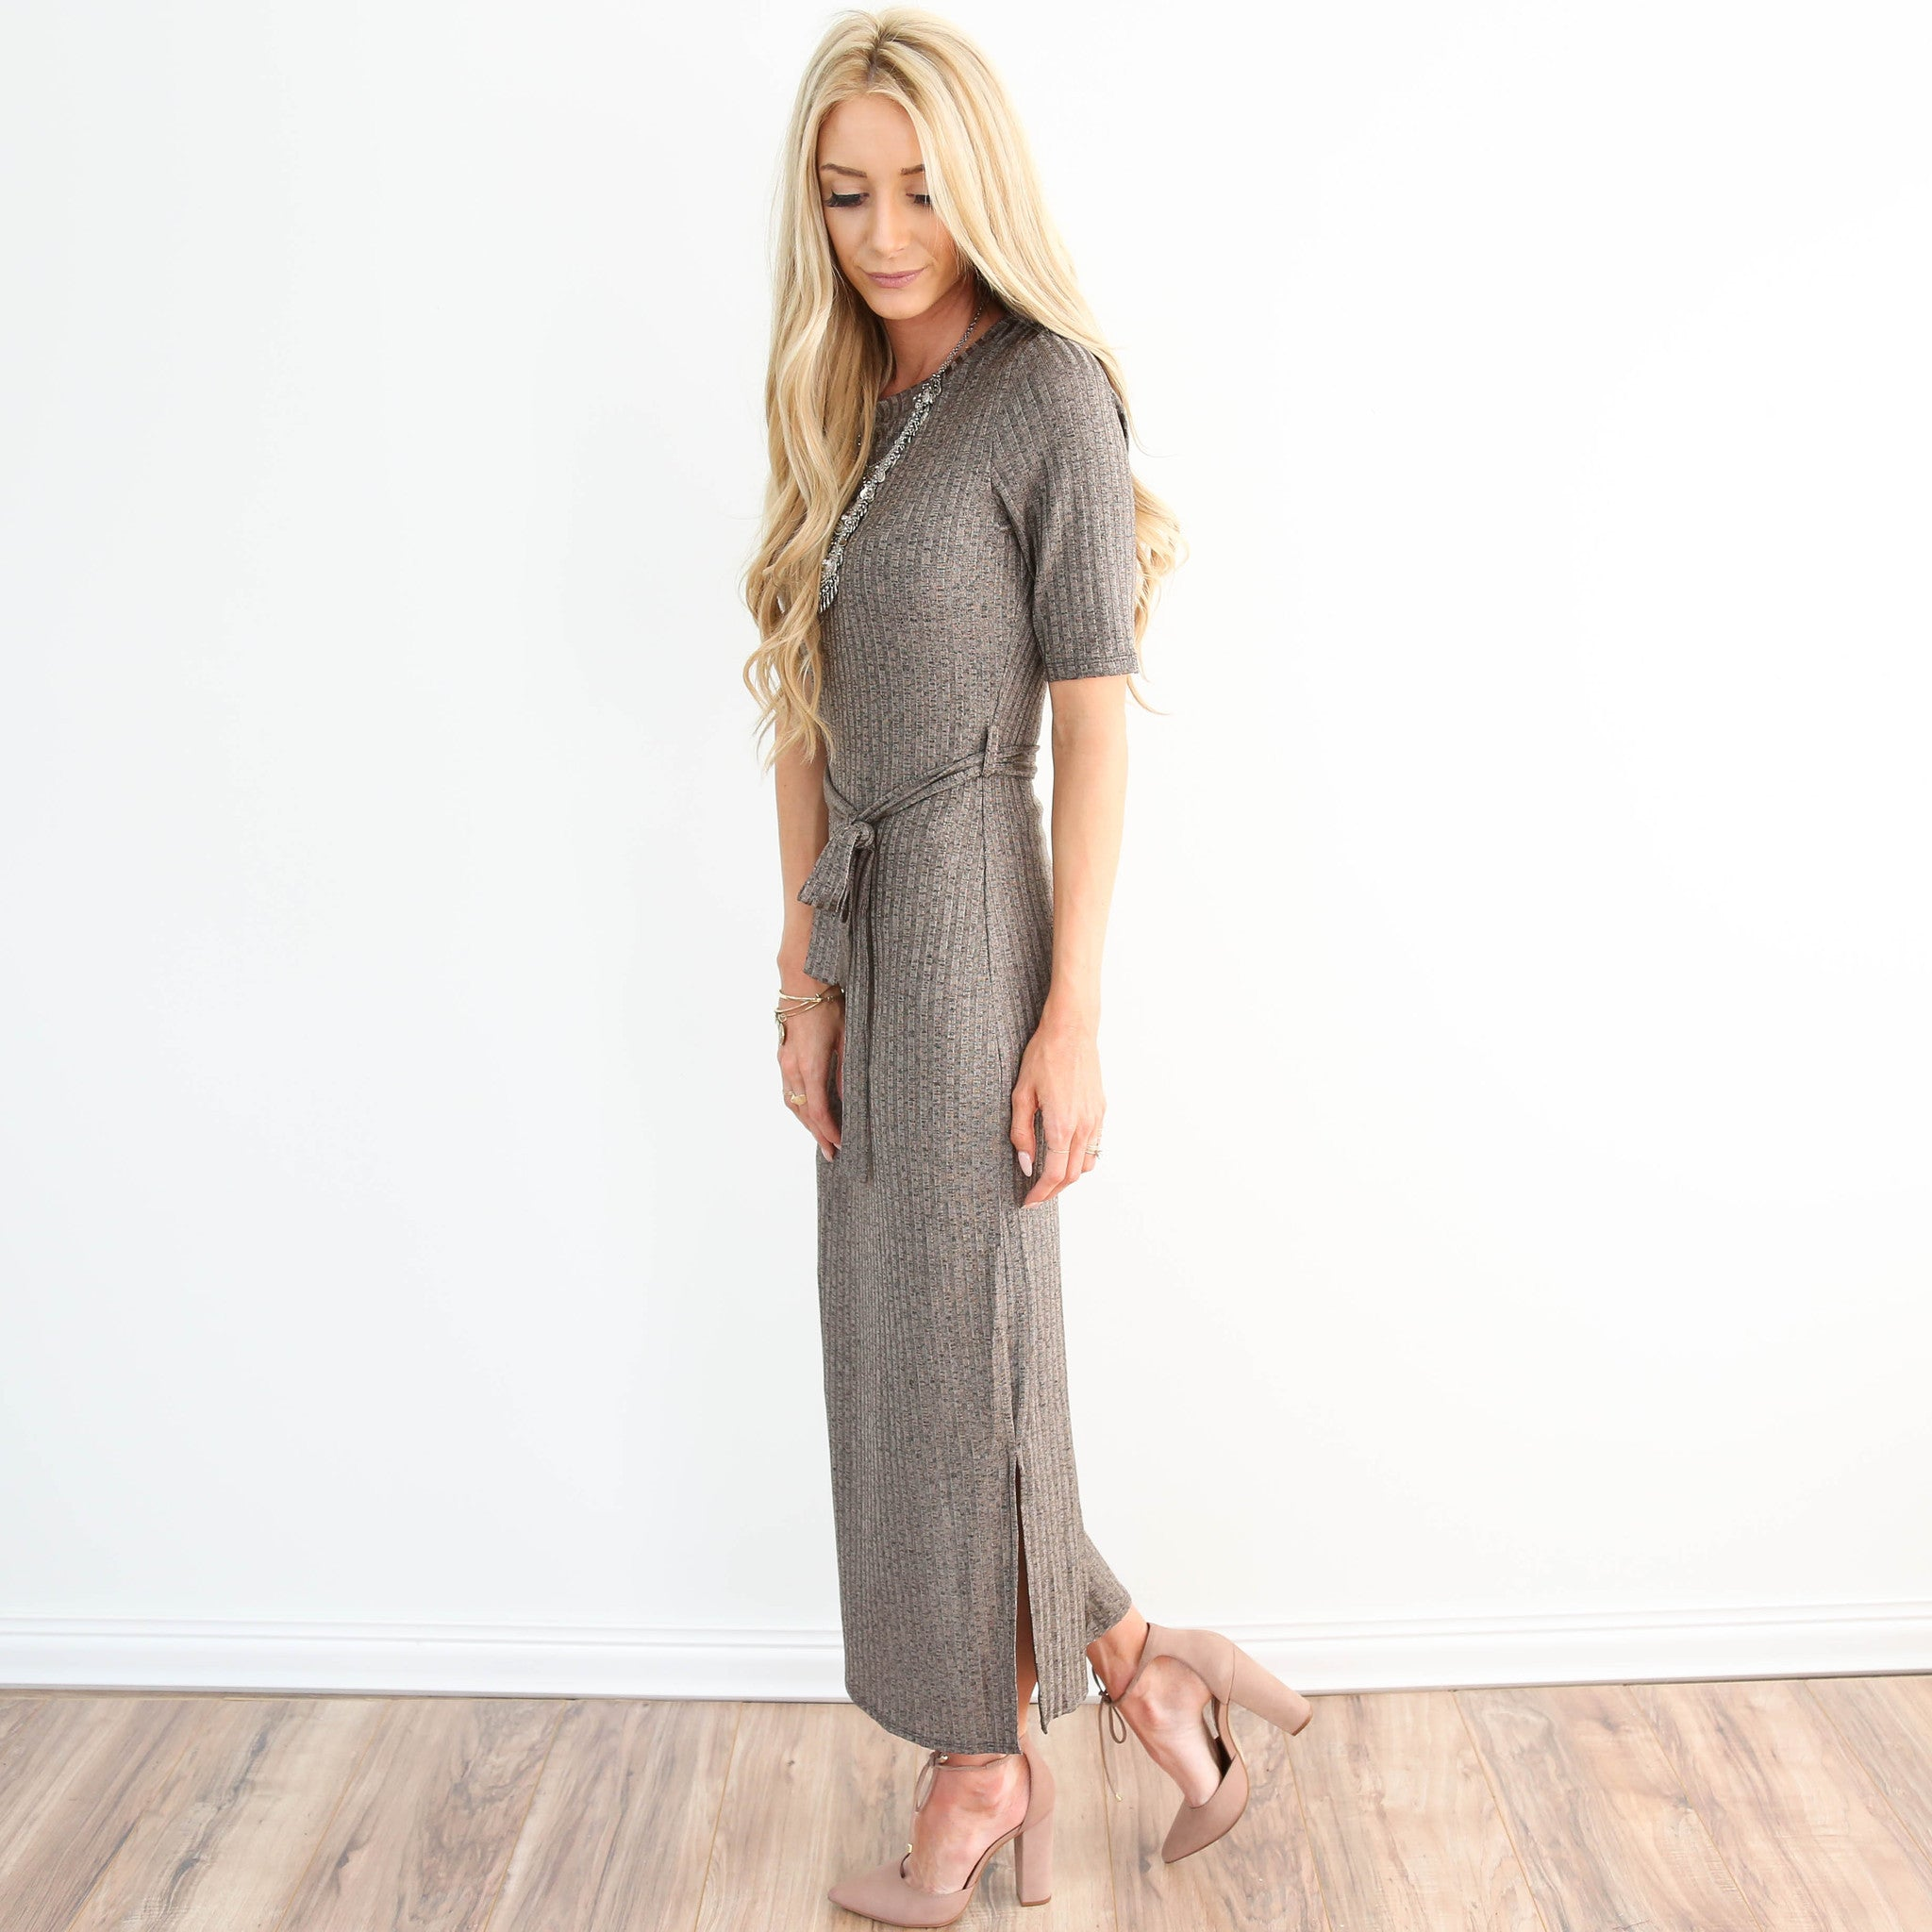 Clarinda Full Length Dress